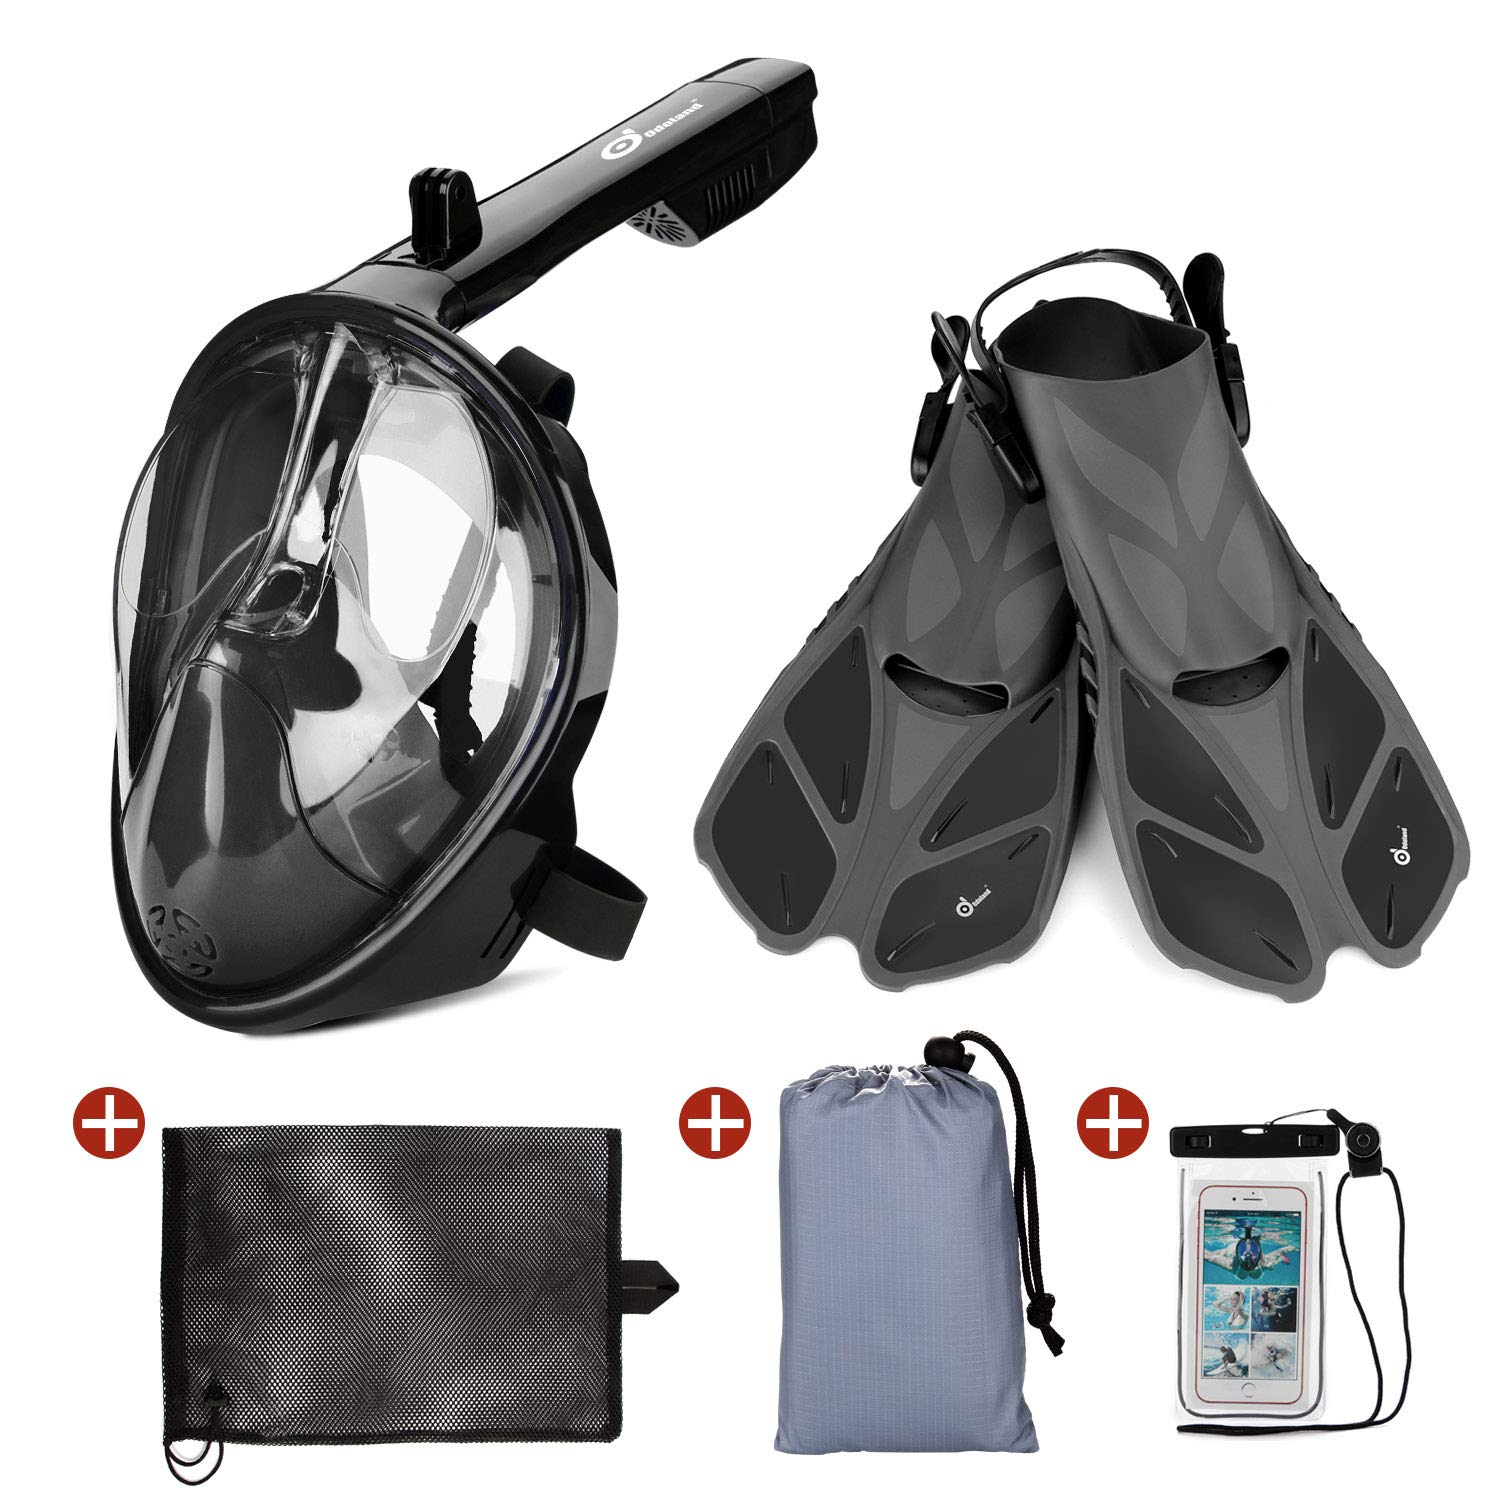 Odoland Snorkel Set, 5-in-1 Snorkel Mask Set with Full Face Snorkel Mask, Snorkel Fins, Beach Blanket, Portable Mesh Bag and Waterproof Phone Case, Best Snorkeling Gear for Adults & Youth, Black by Odoland